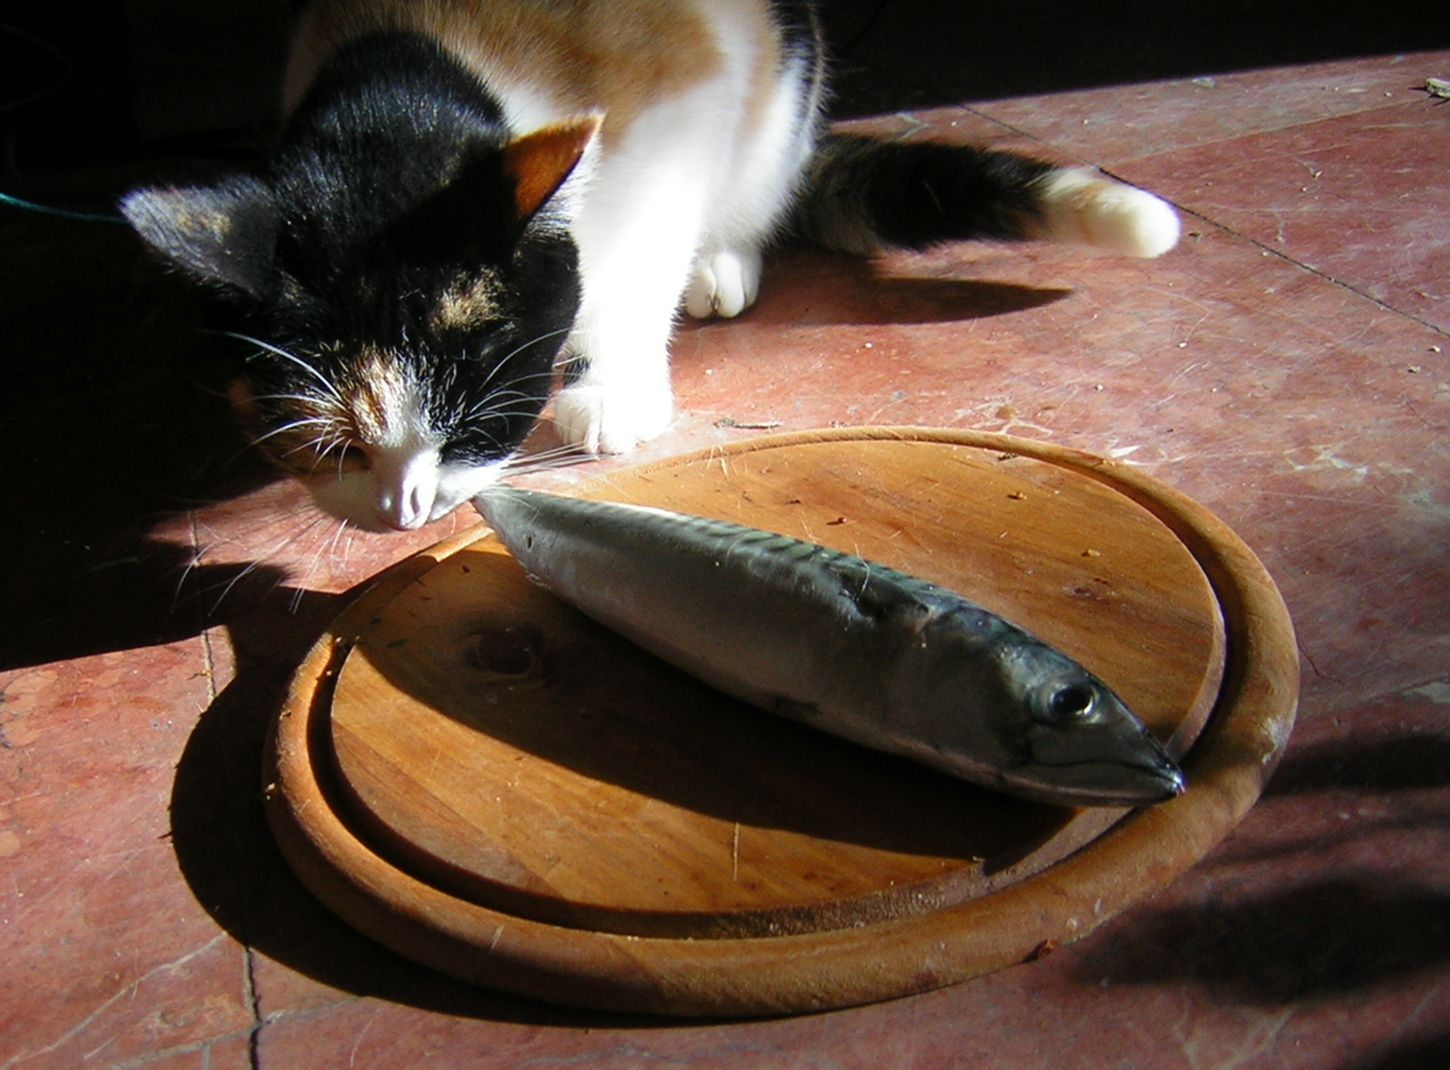 Cat eating a whole fish